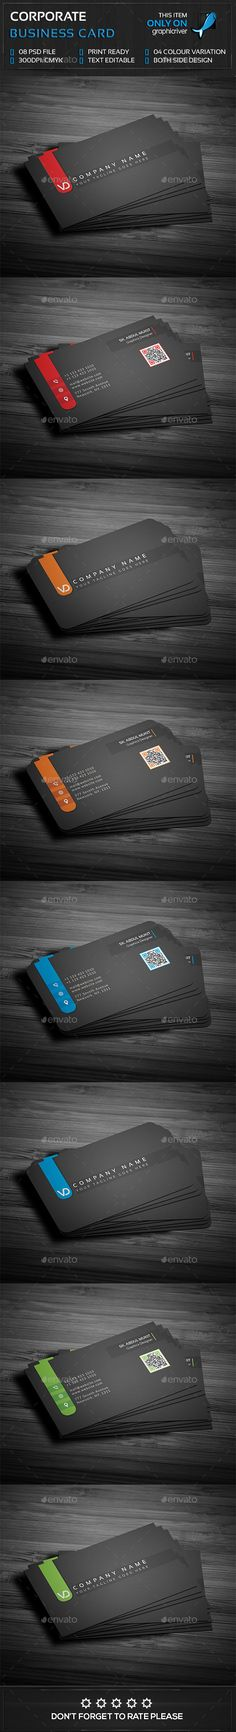 Corporate Business Card Template PSD #design Download: http://graphicriver.net/item/corporate-business-card/14400338?ref=ksioks